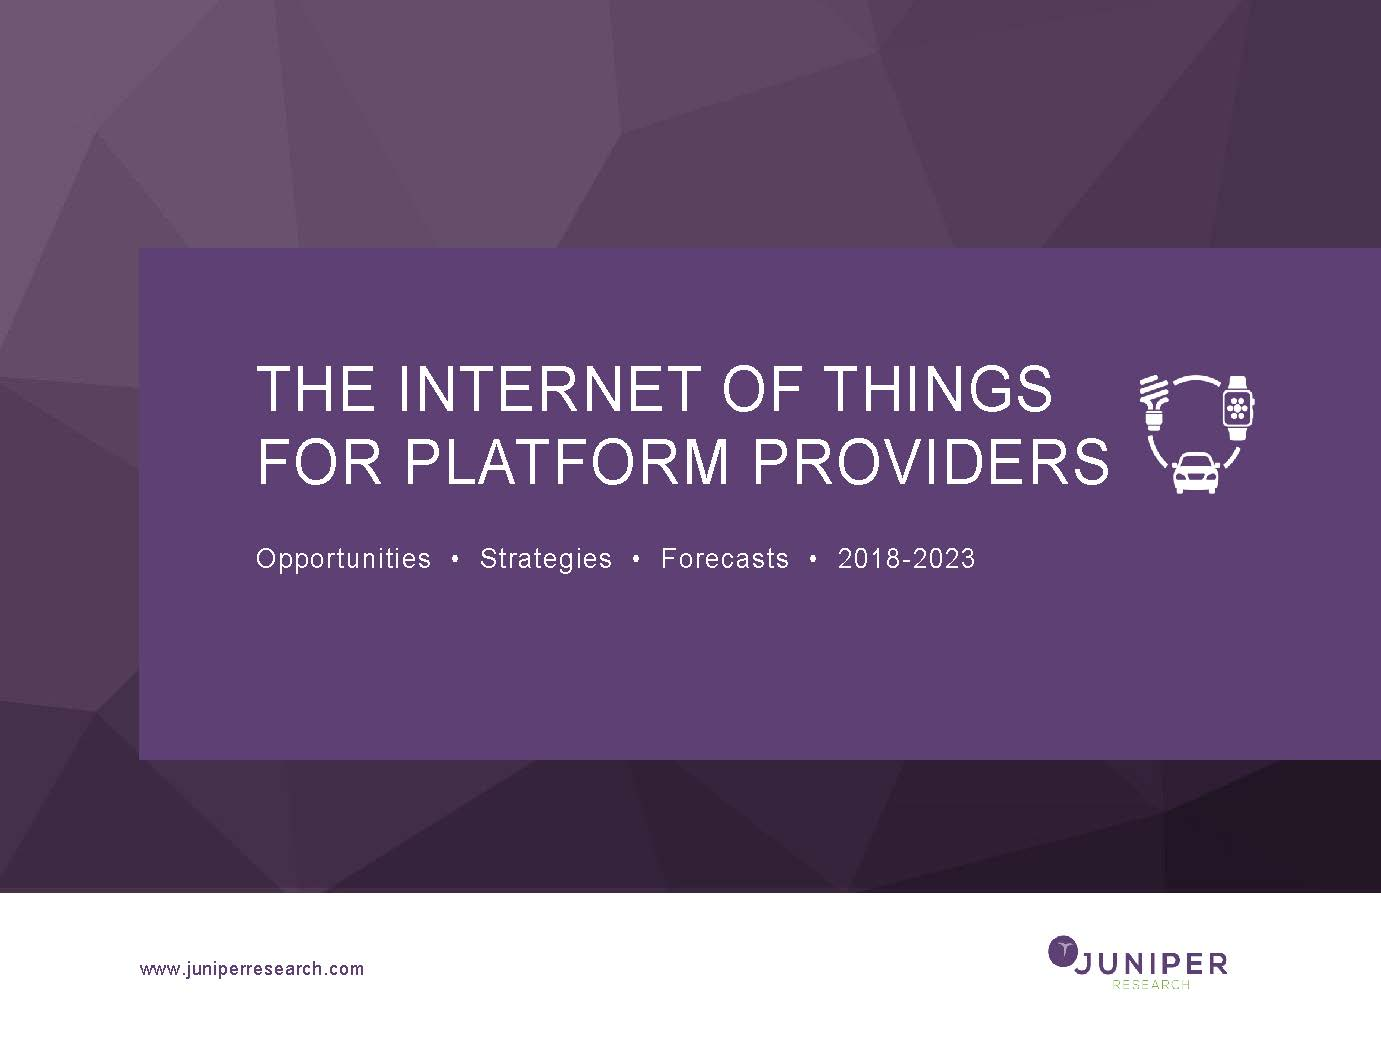 The Internet of Things for Platform Providers